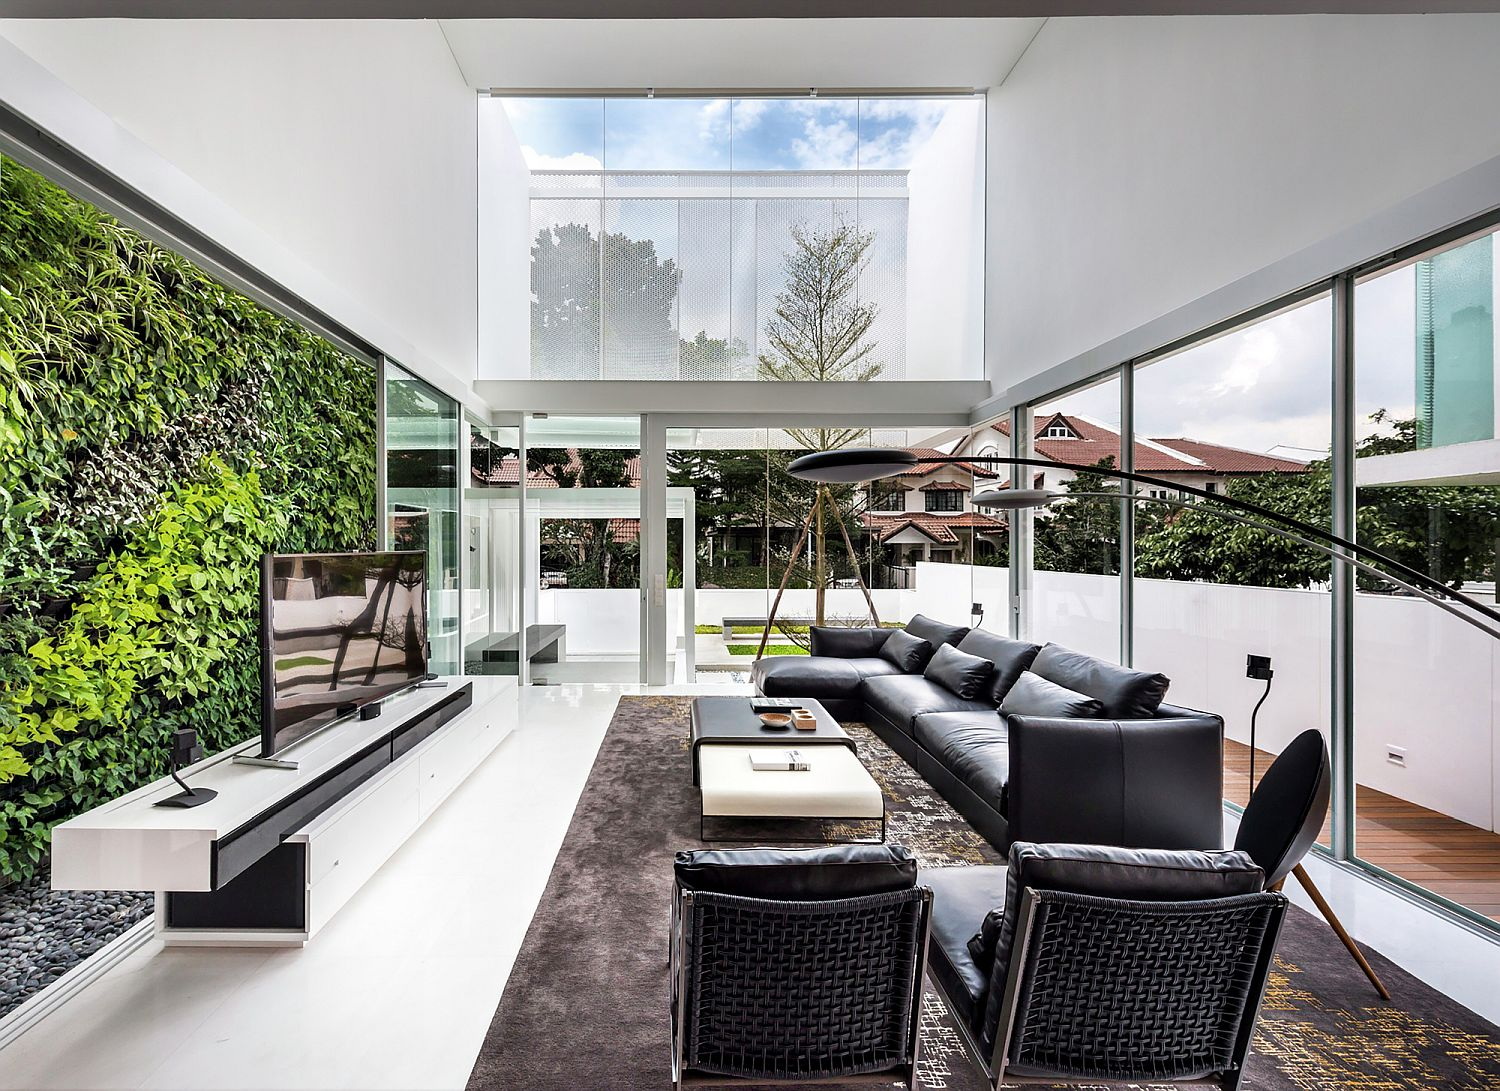 Living room with green wall in the backdrop and ample natural light